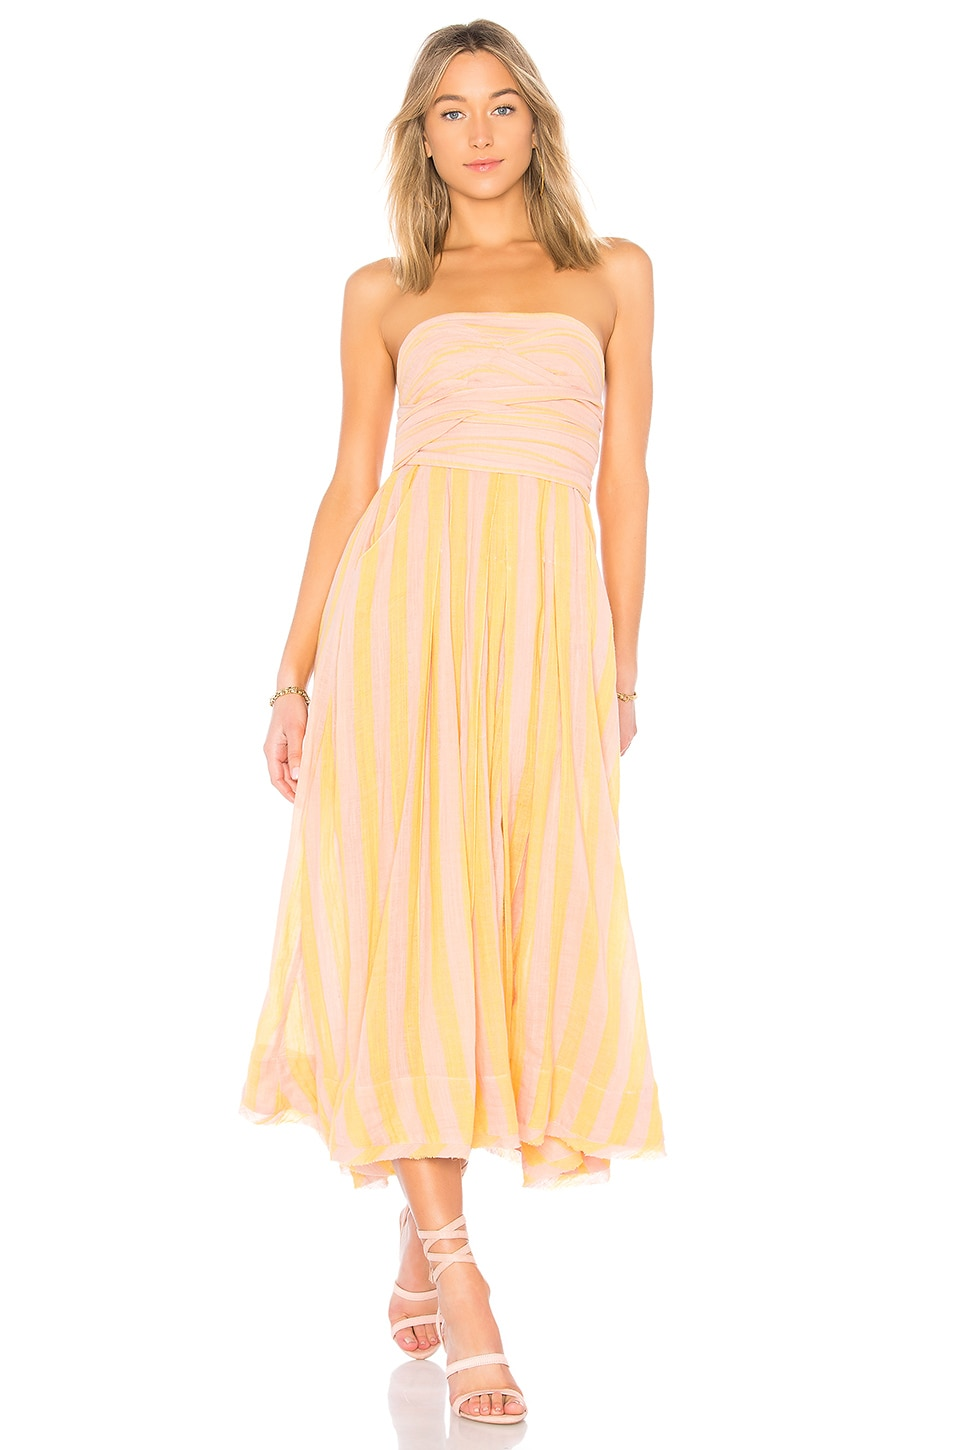 Free People Stripe Me Up Dress in Yellow Combo | REVOLVE